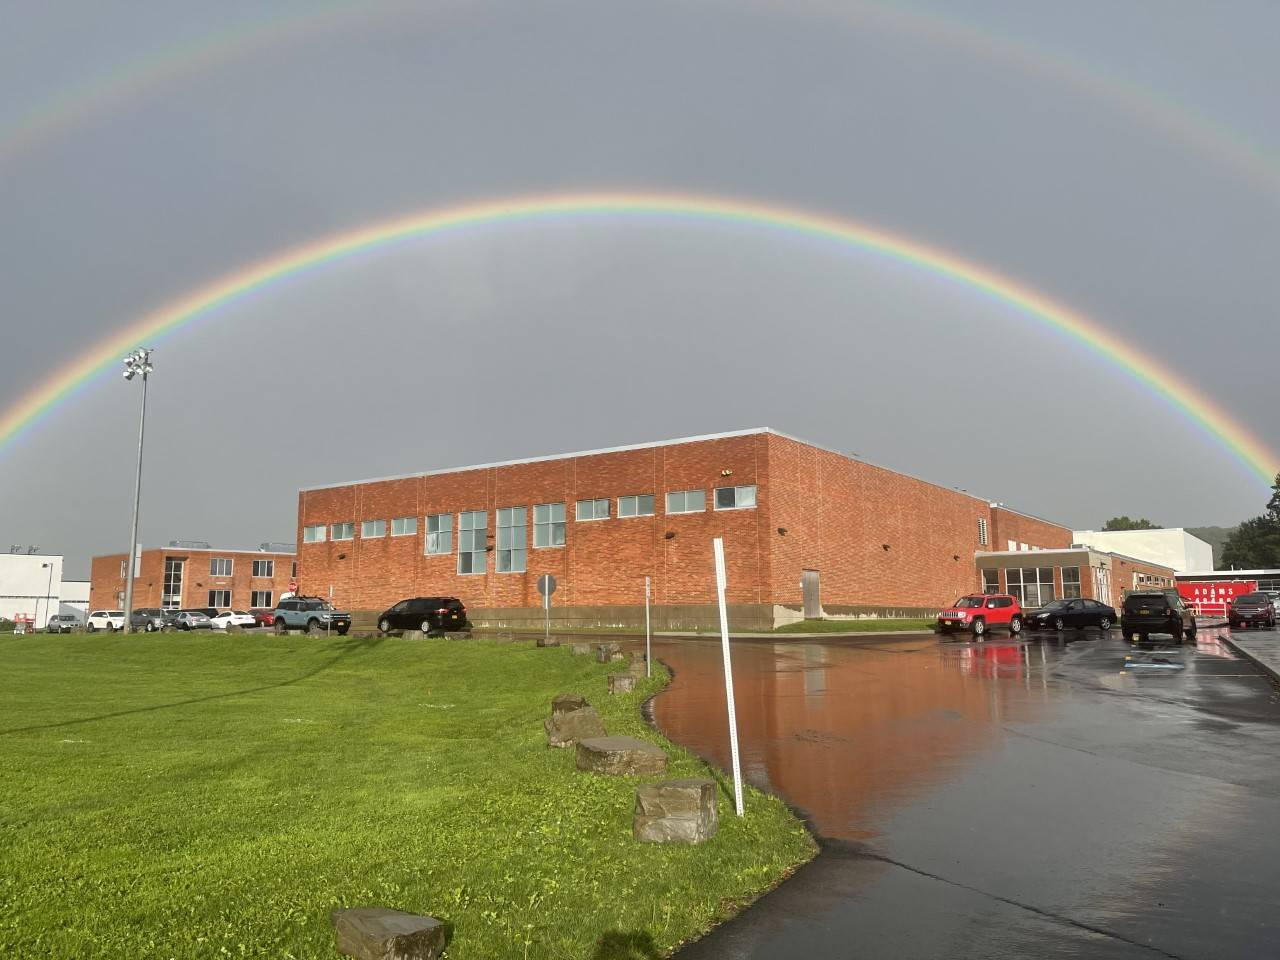 Photo of Rainbow Over HS Building